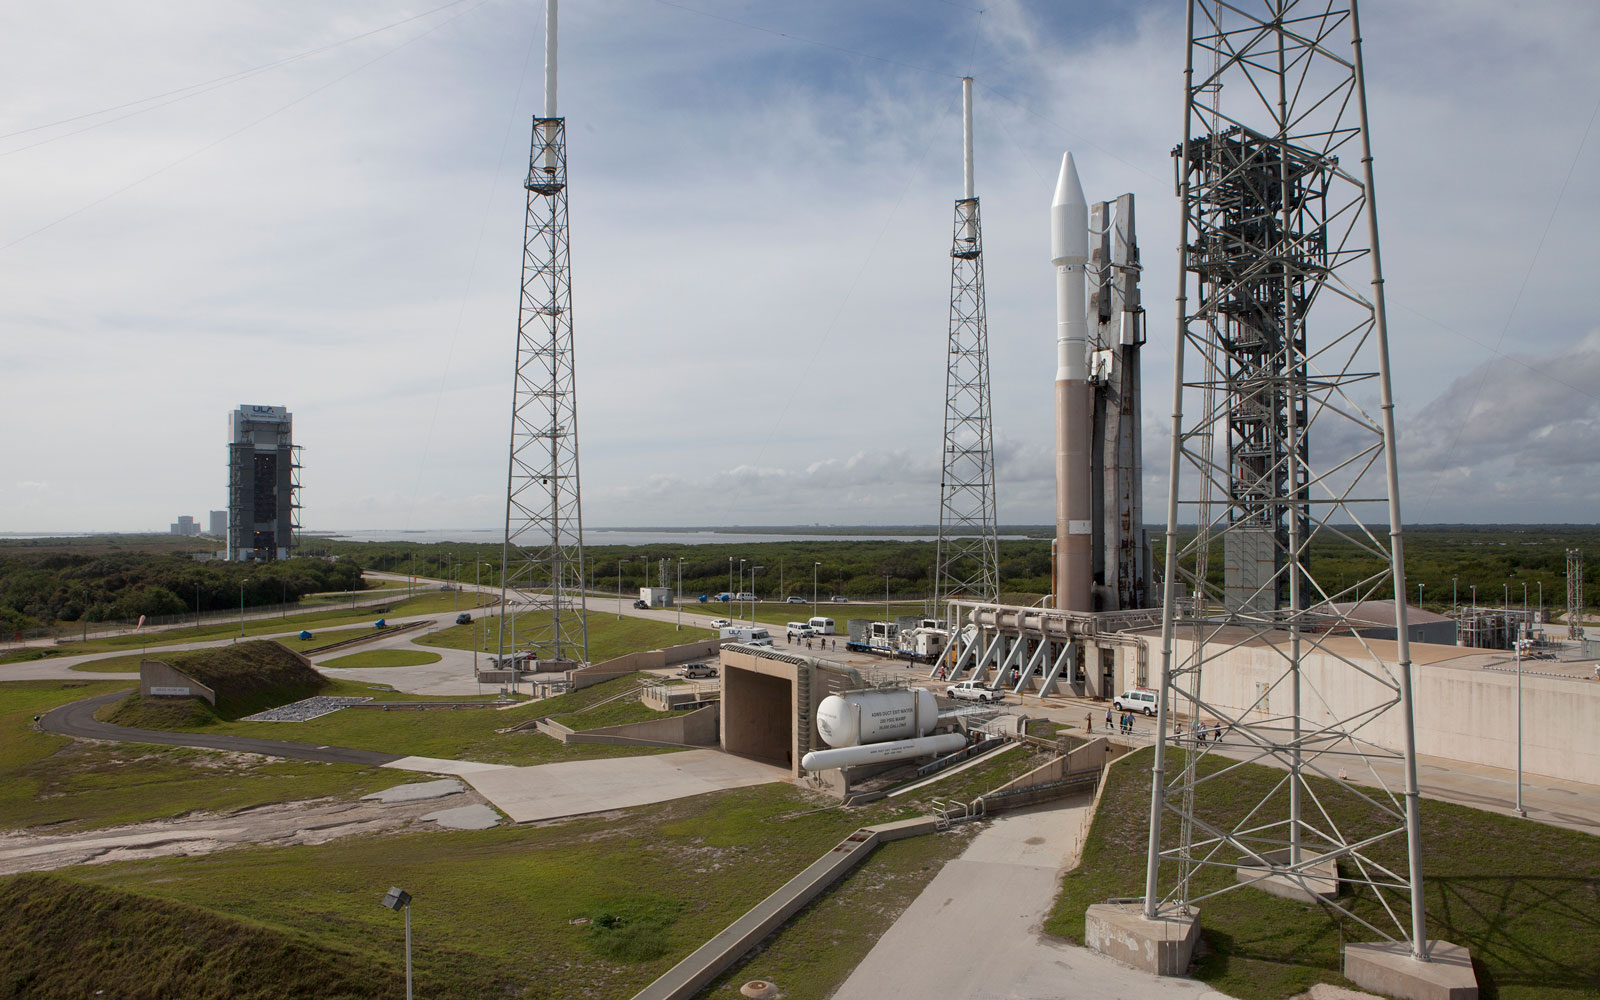 How to Watch the First 360-degree Livestream of a NASA Rocket Launch